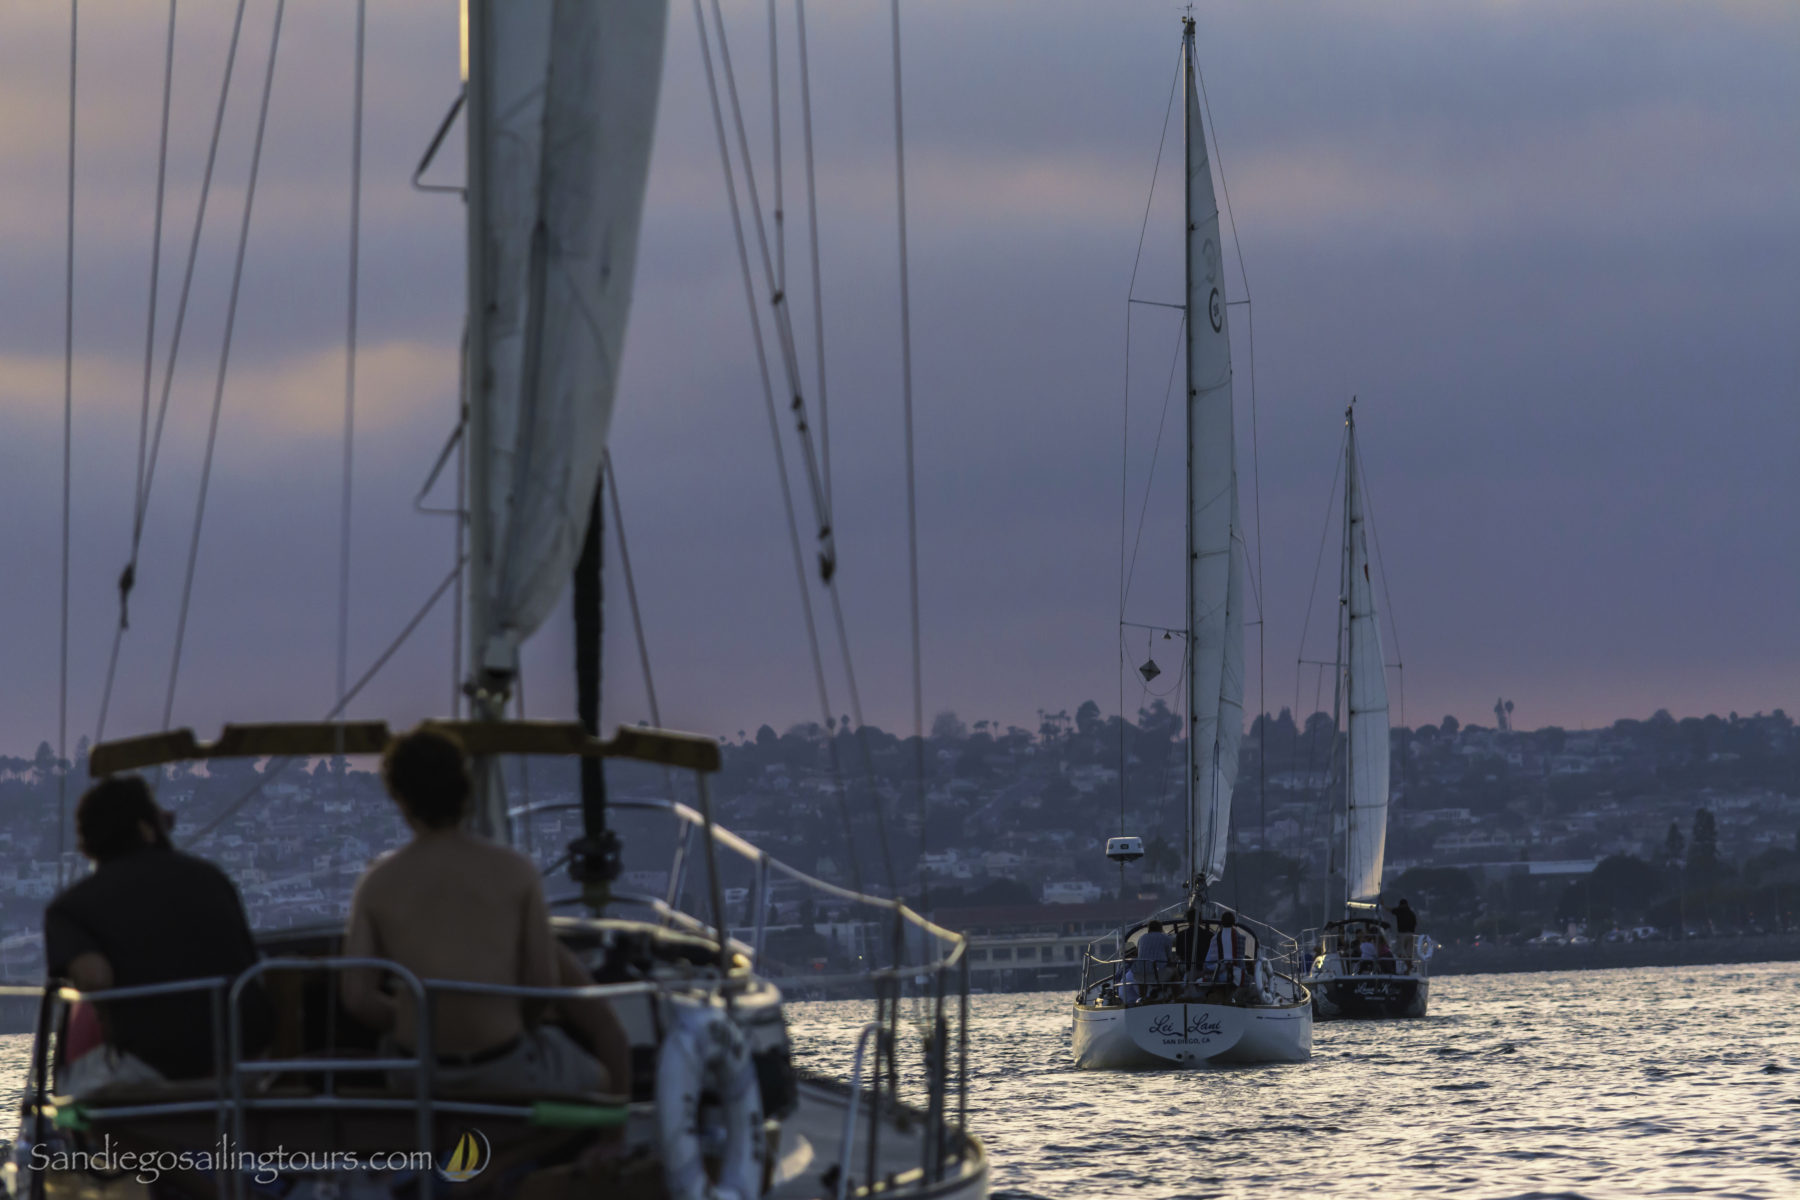 What's Coming Soon to San Diego Sailing Tours?